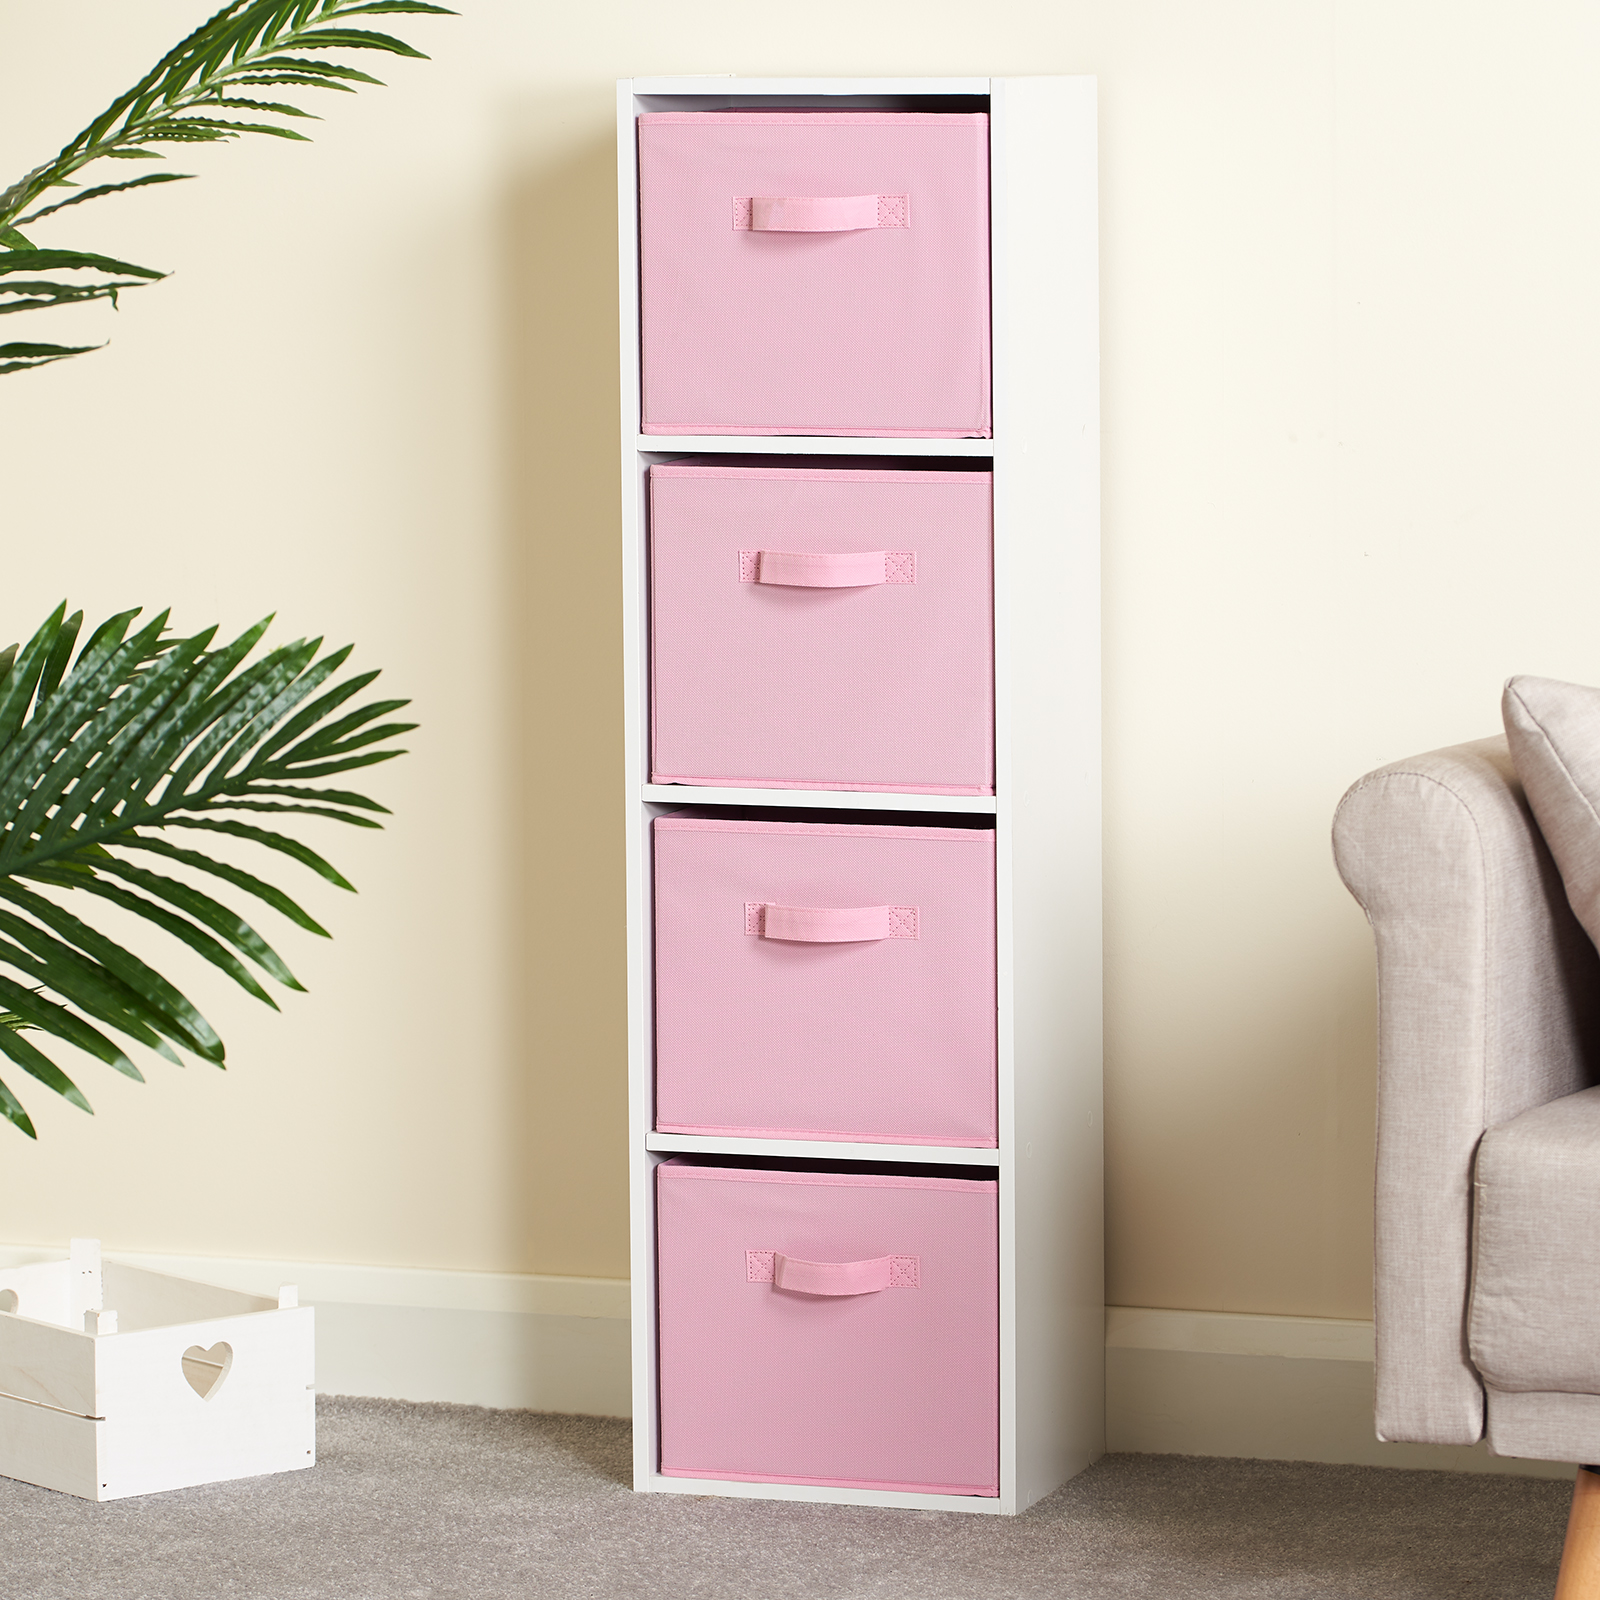 Hartleys-4-Tier-White-Bookcase-Wooden-Display-Shelving-Unit-amp-Fabric-Storage-Box thumbnail 31